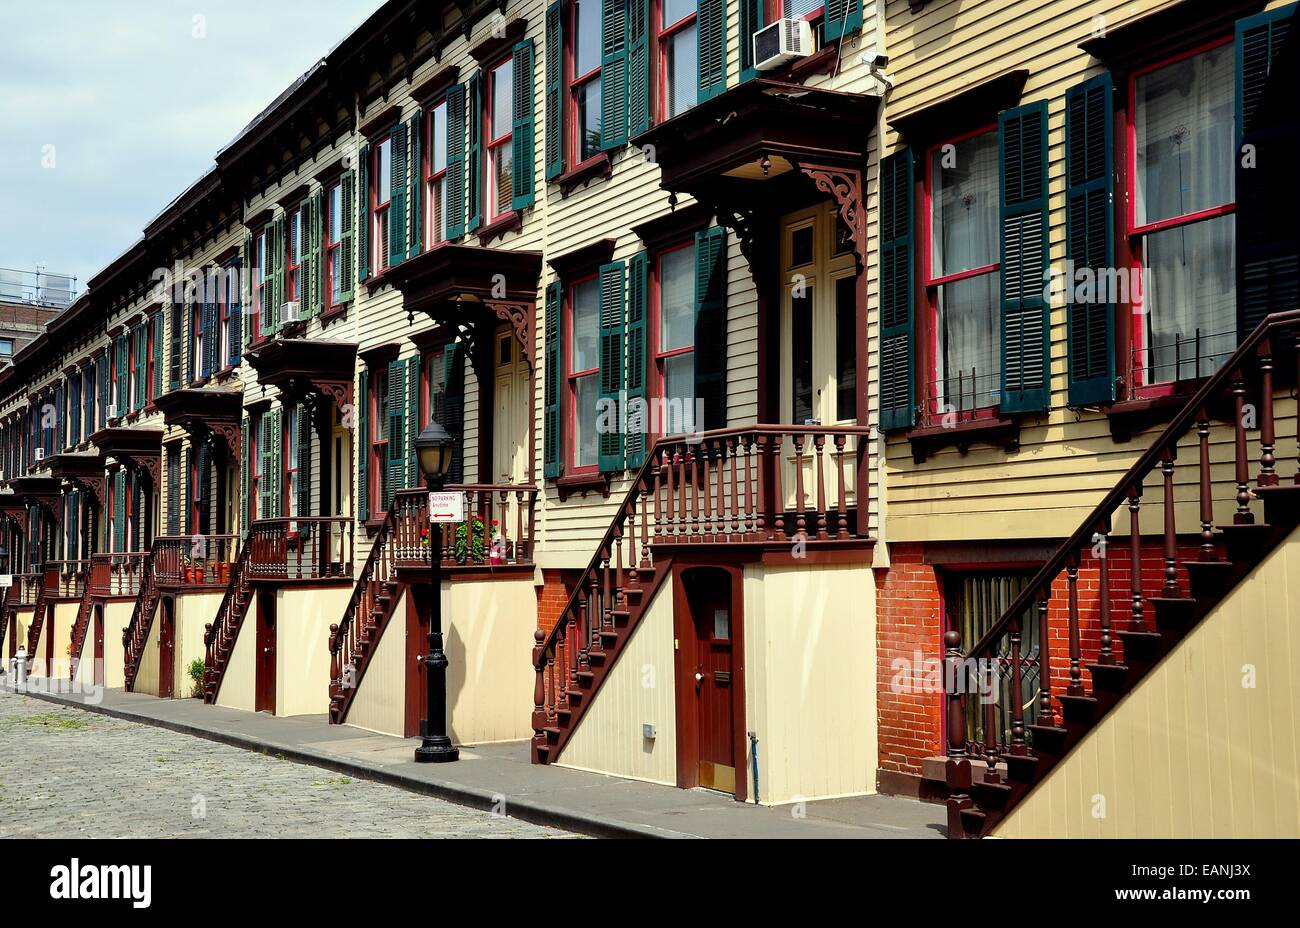 NYC:  Unique two story 1882 wooden row houses with stairway stoops and basement entry doors on Sylvan Terrace * - Stock Image